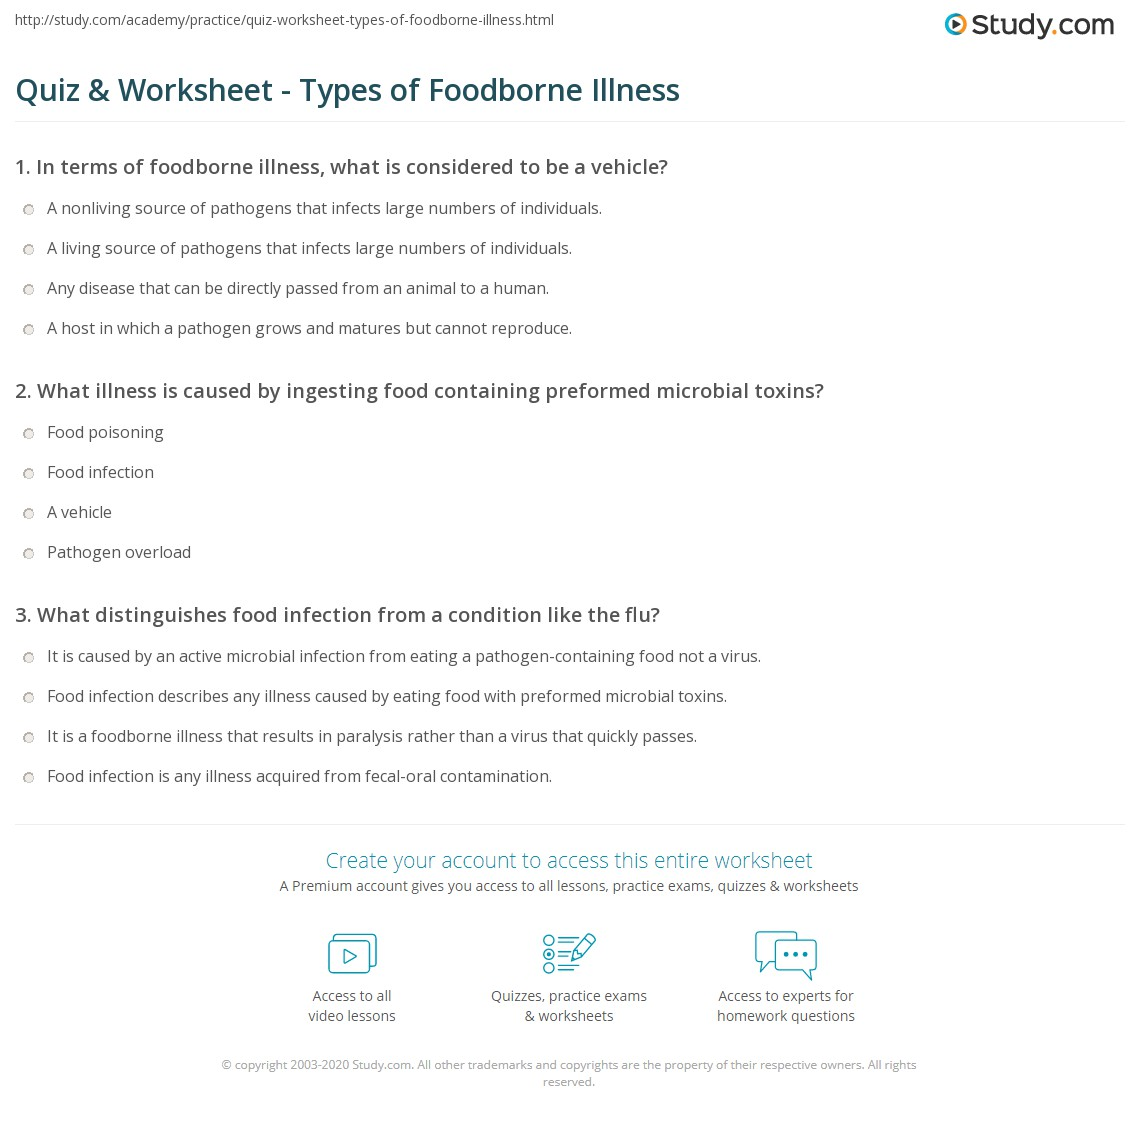 quiz worksheet types of foodborne illness. Black Bedroom Furniture Sets. Home Design Ideas